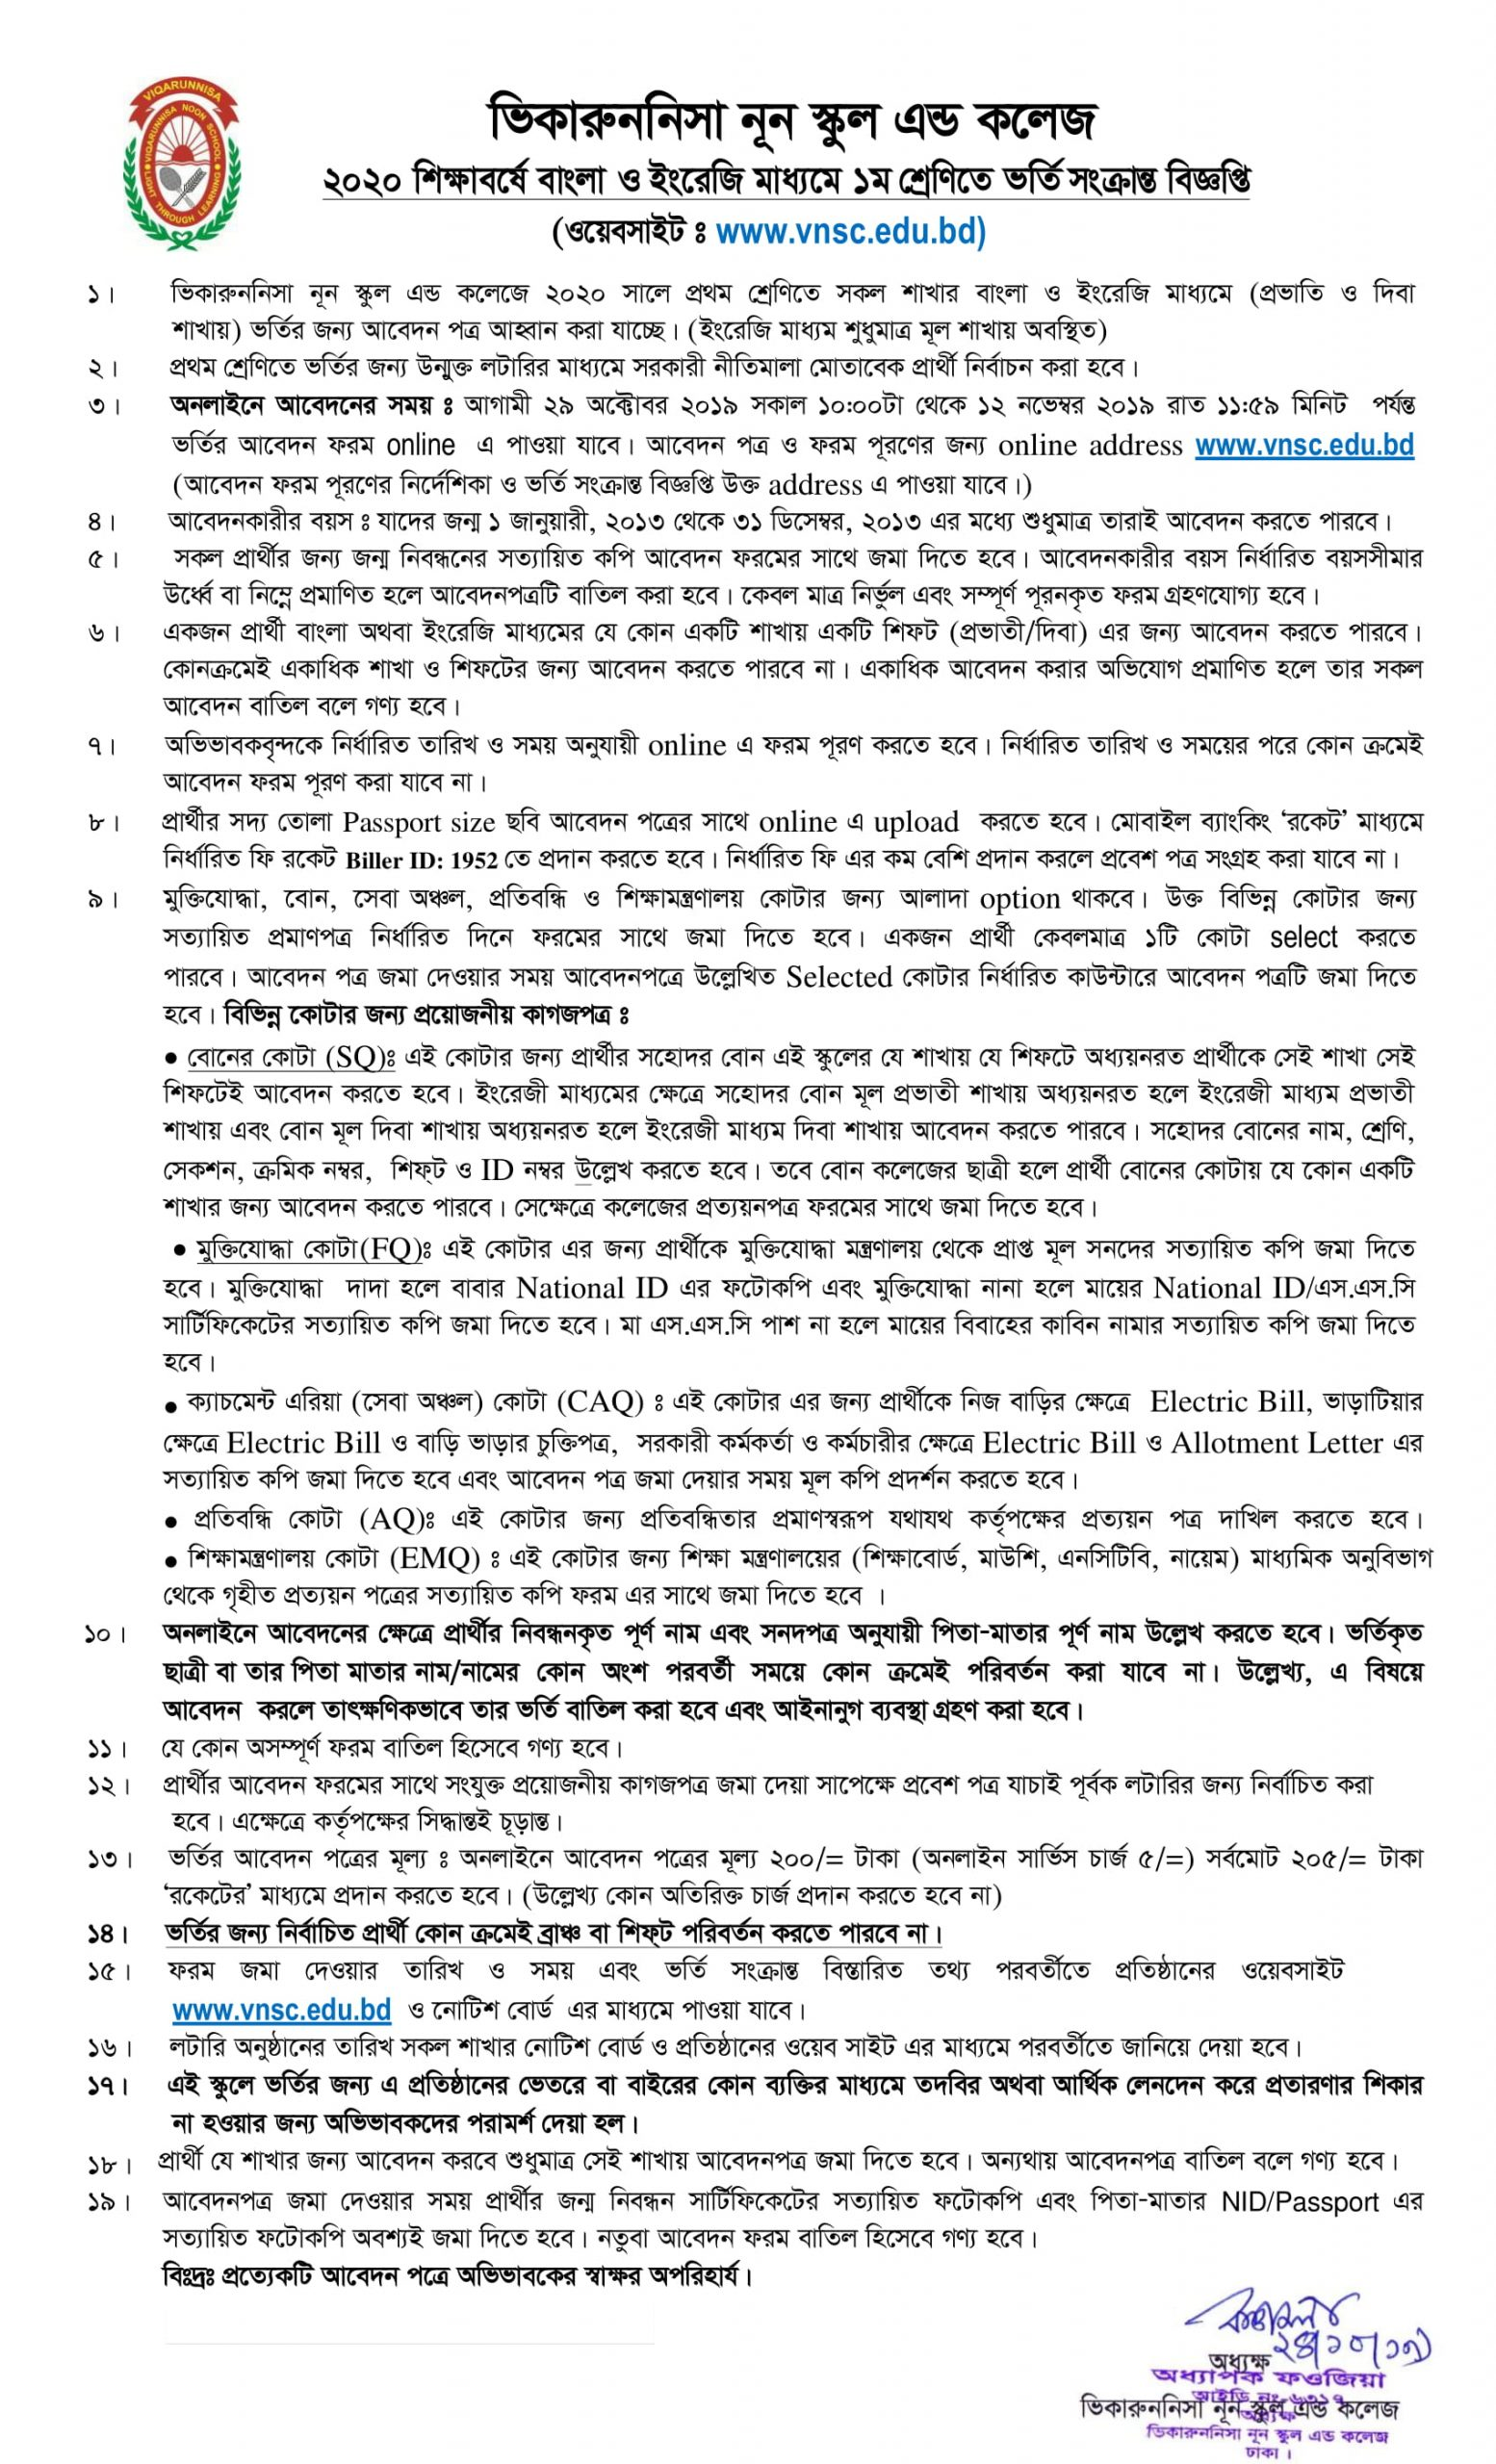 VNSC Class One Admission Circular